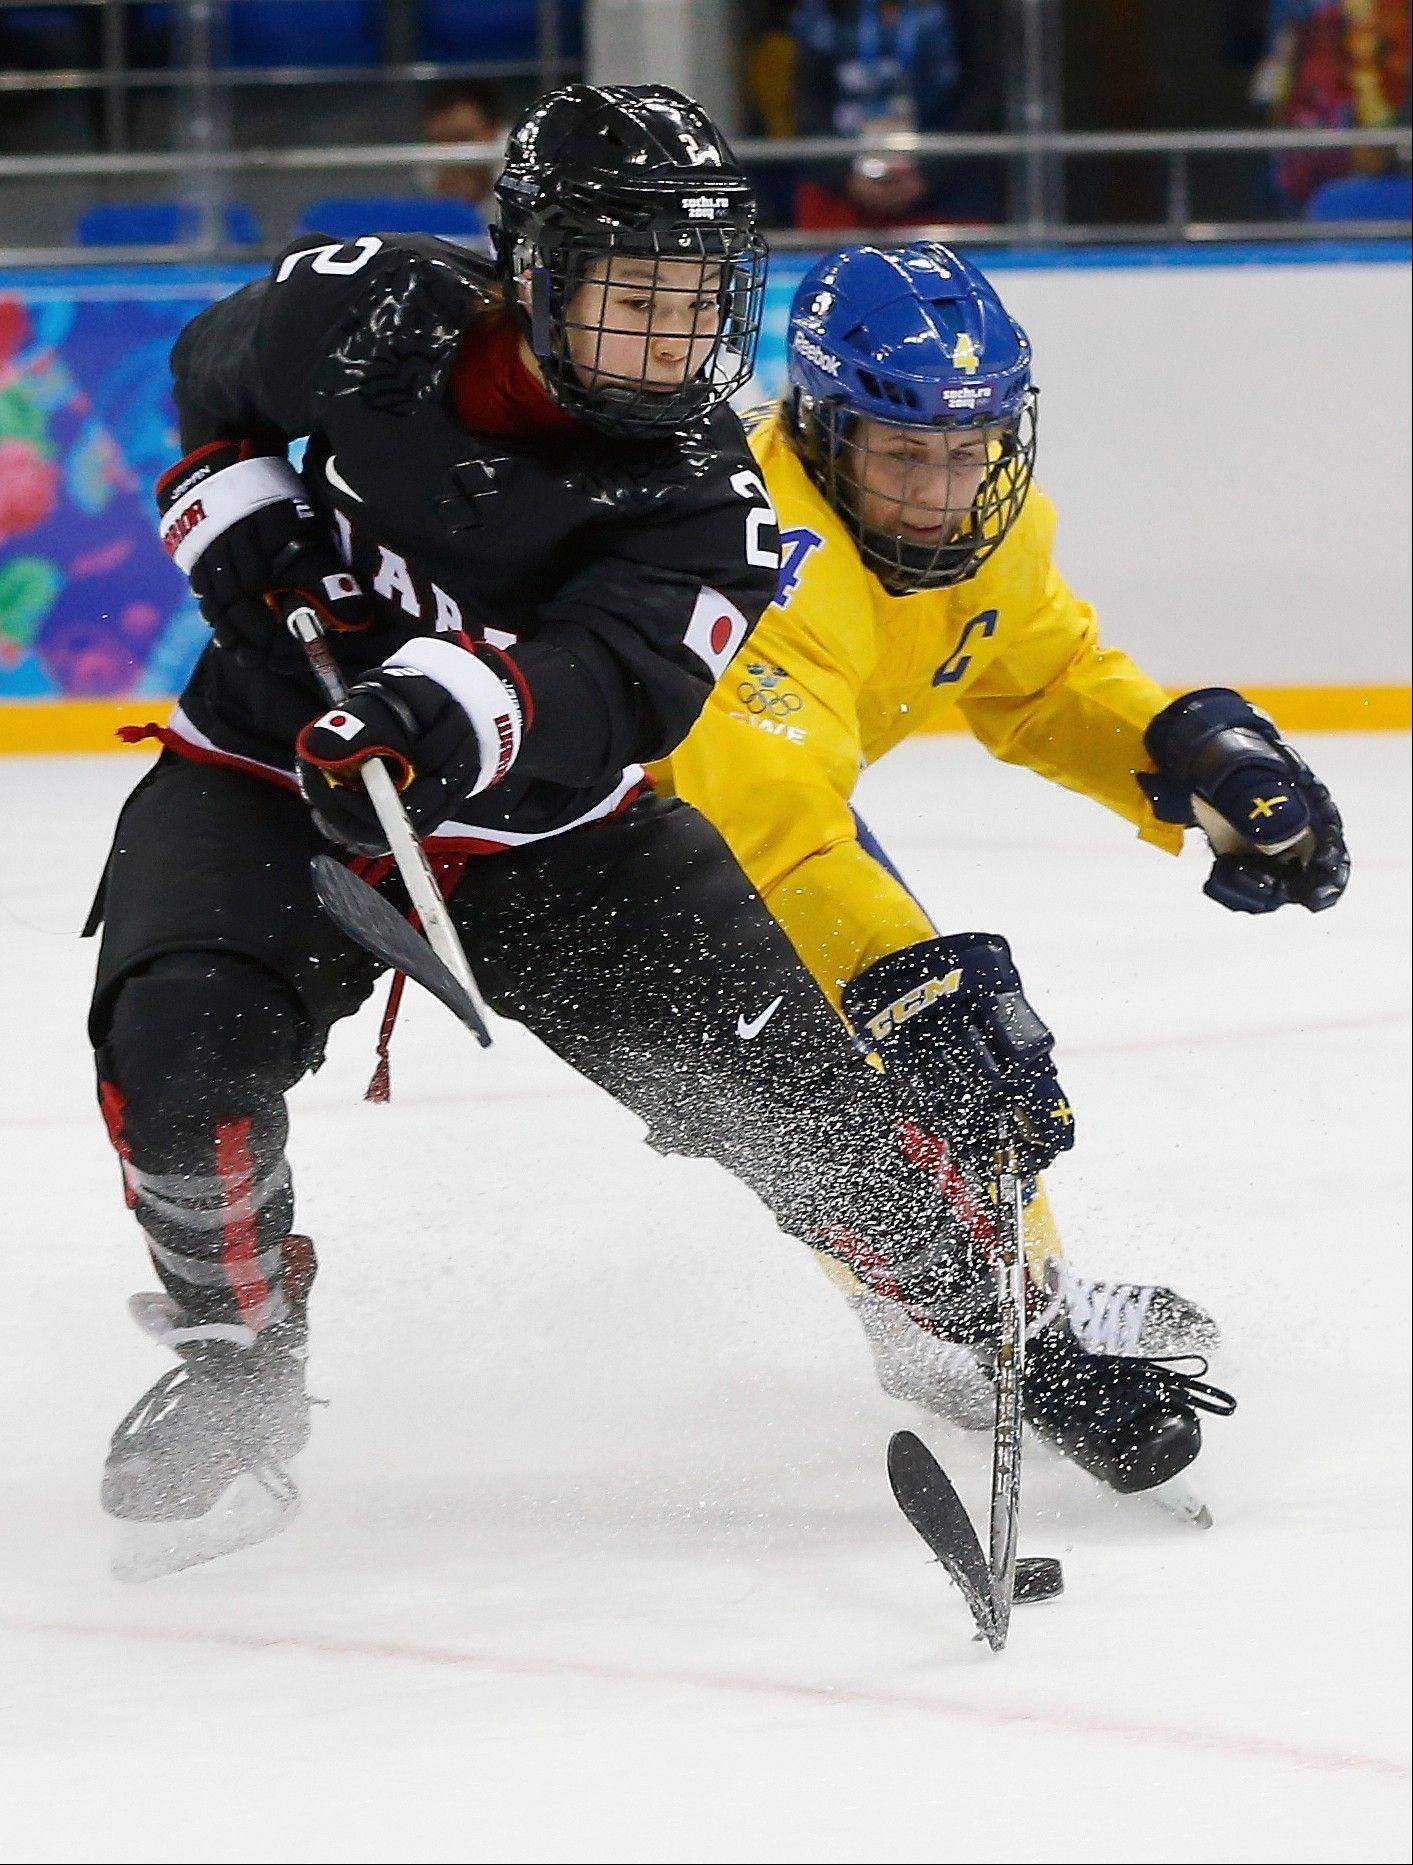 Shiori Koike of Japan and Jenni Asserholt of Sweden battle for control of the puck during the third period of the 2014 Winter Olympics women's ice hockey game at Shayba Arena, Sunday, Feb. 9, 2014, in Sochi, Russia.